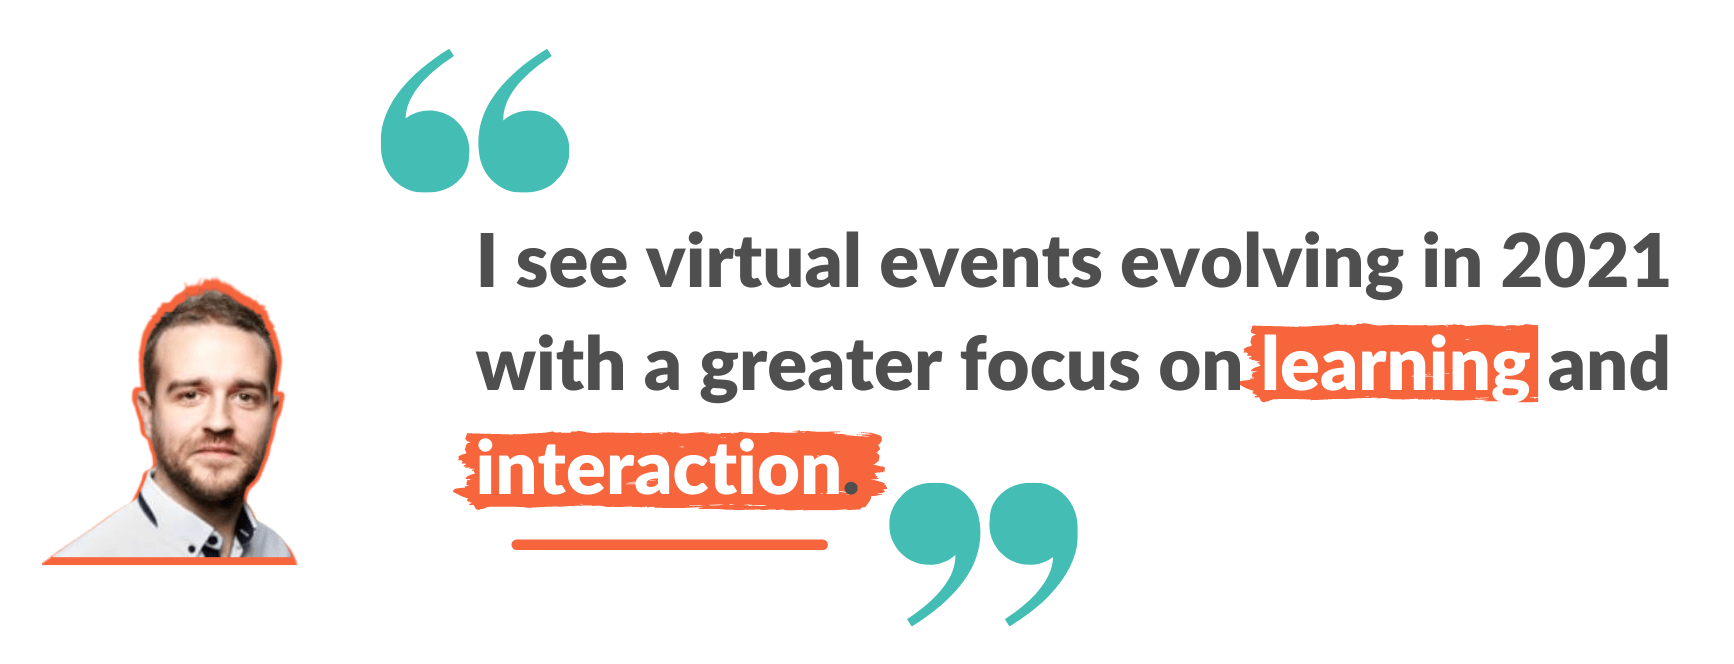 virtual event trends